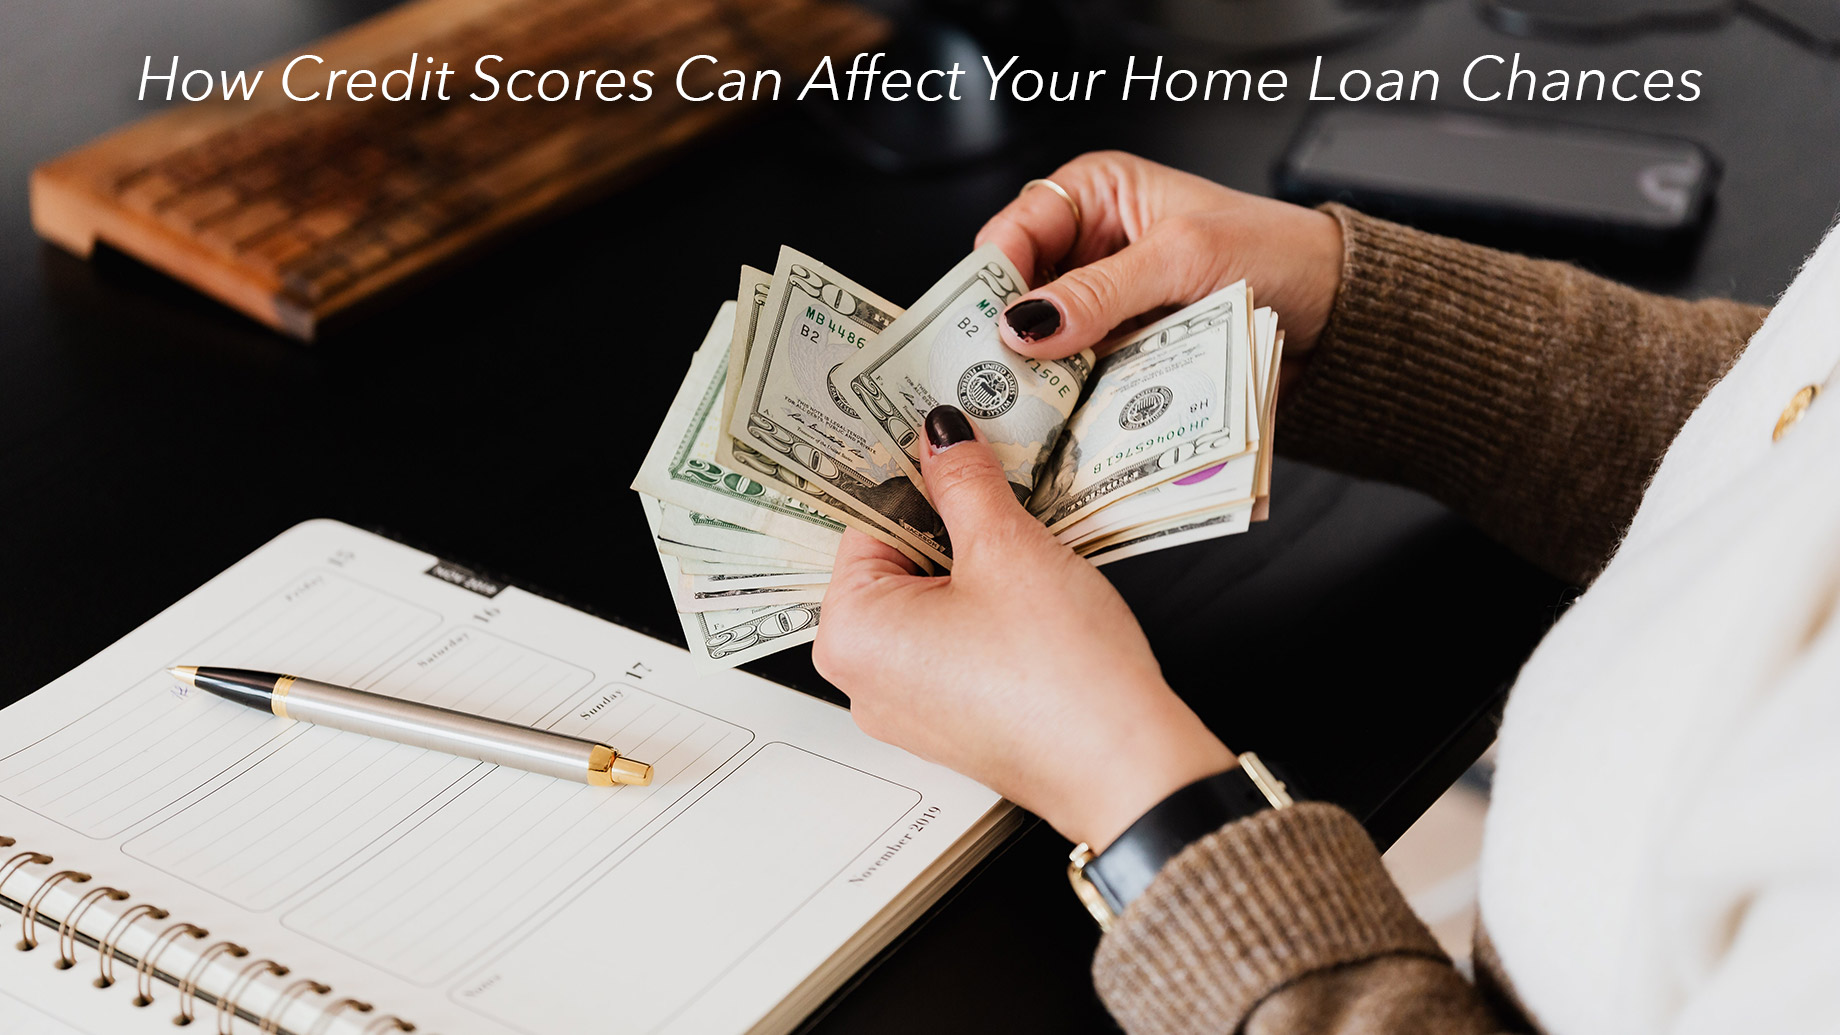 How Credit Scores Can Affect Your Home Loan Chances